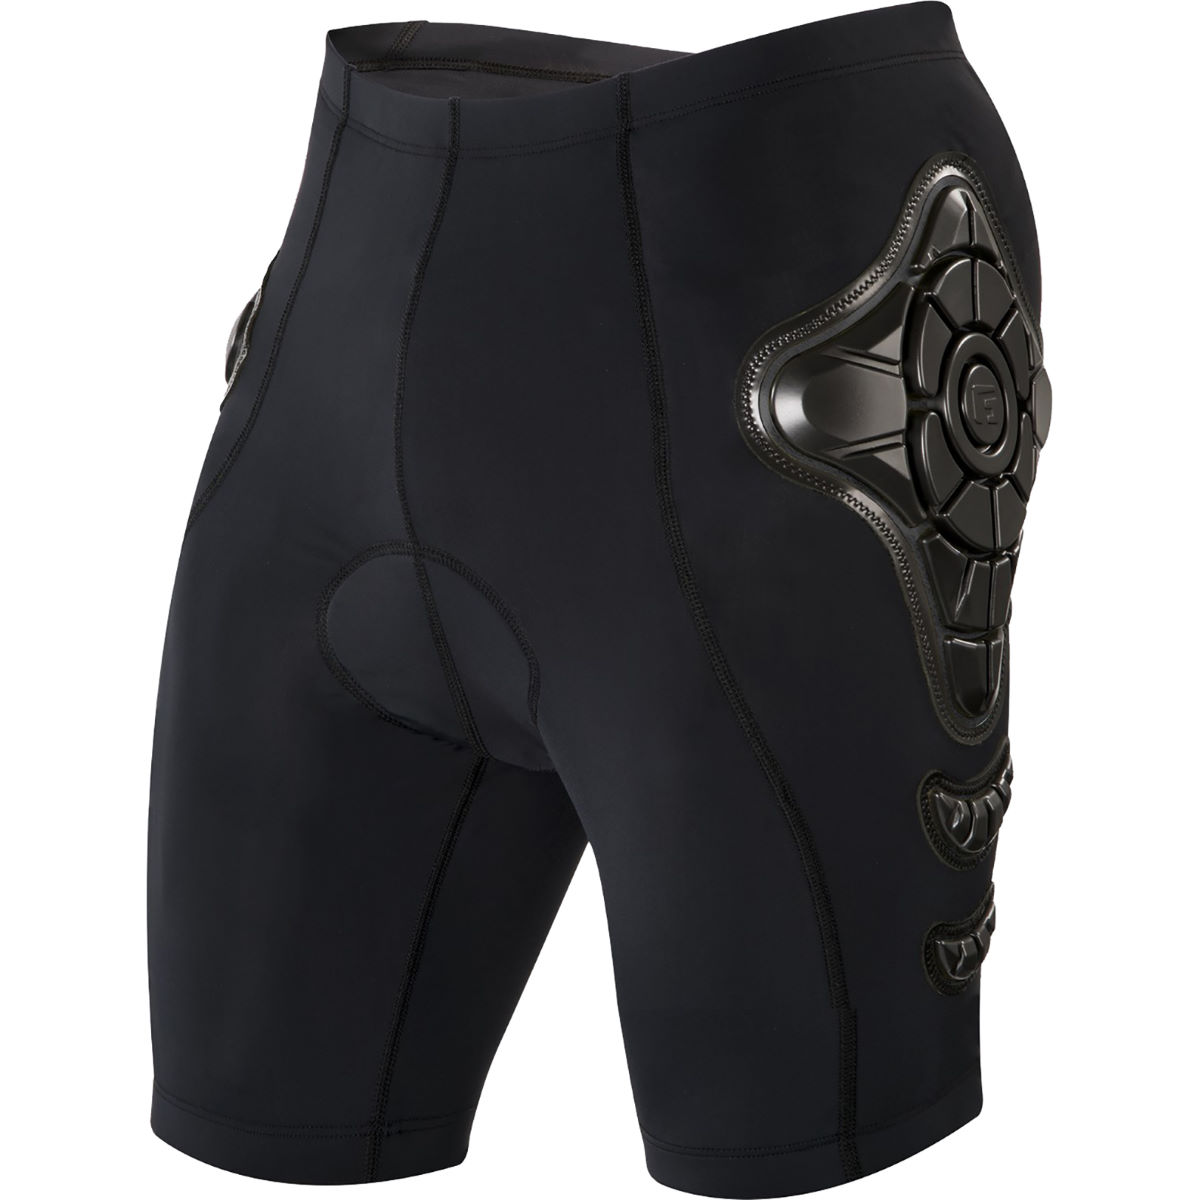 G-Form Pro-B Compression Shorts w/ Chamois - Pantalones protectores